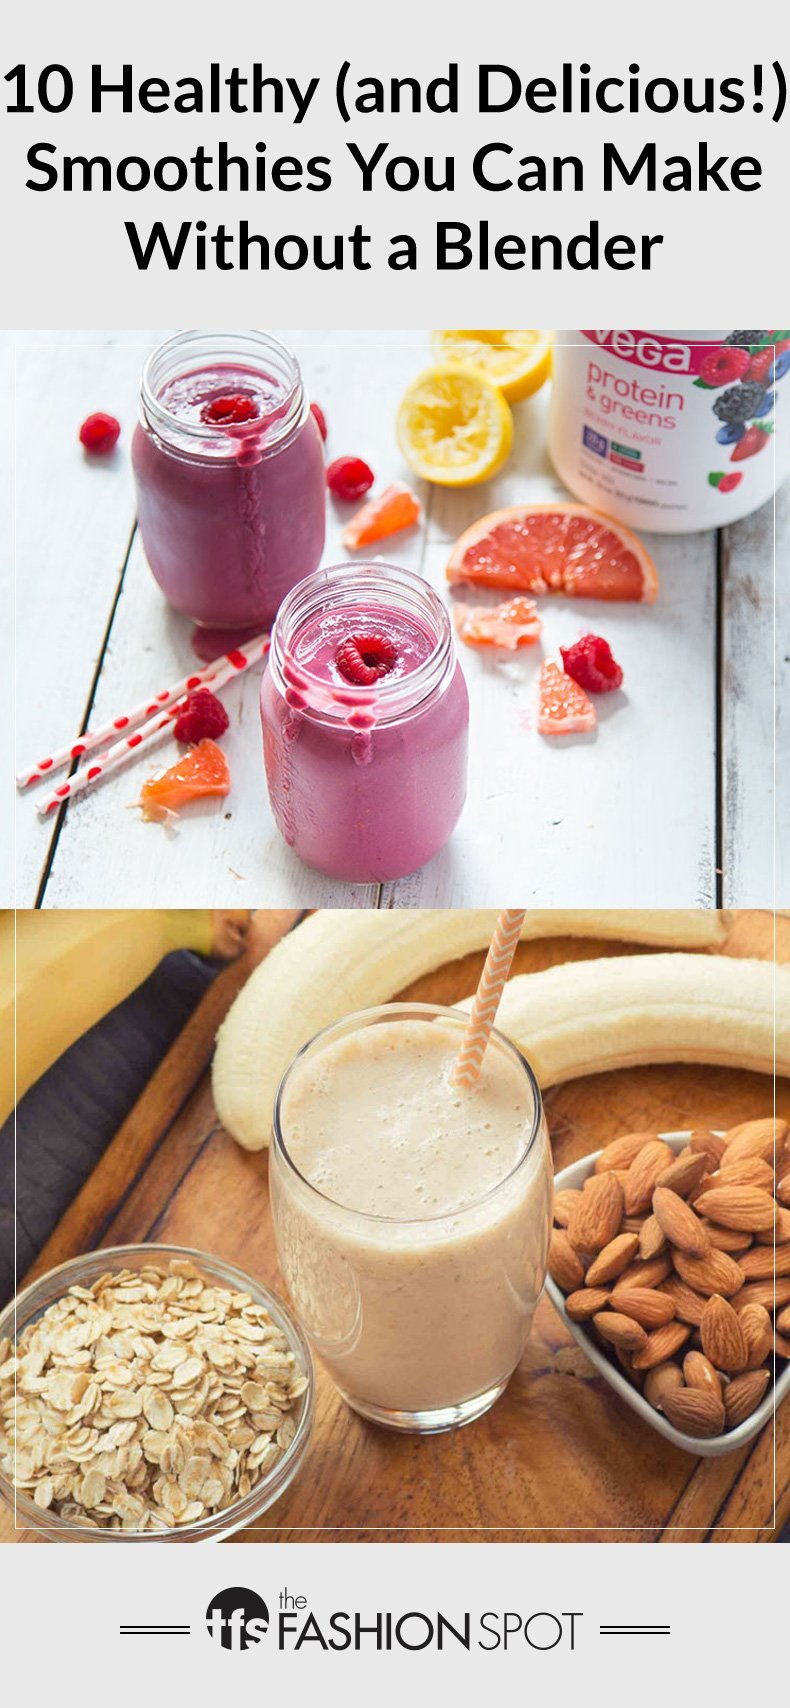 10 Healthy Smoothie Recipes, No Blender Required